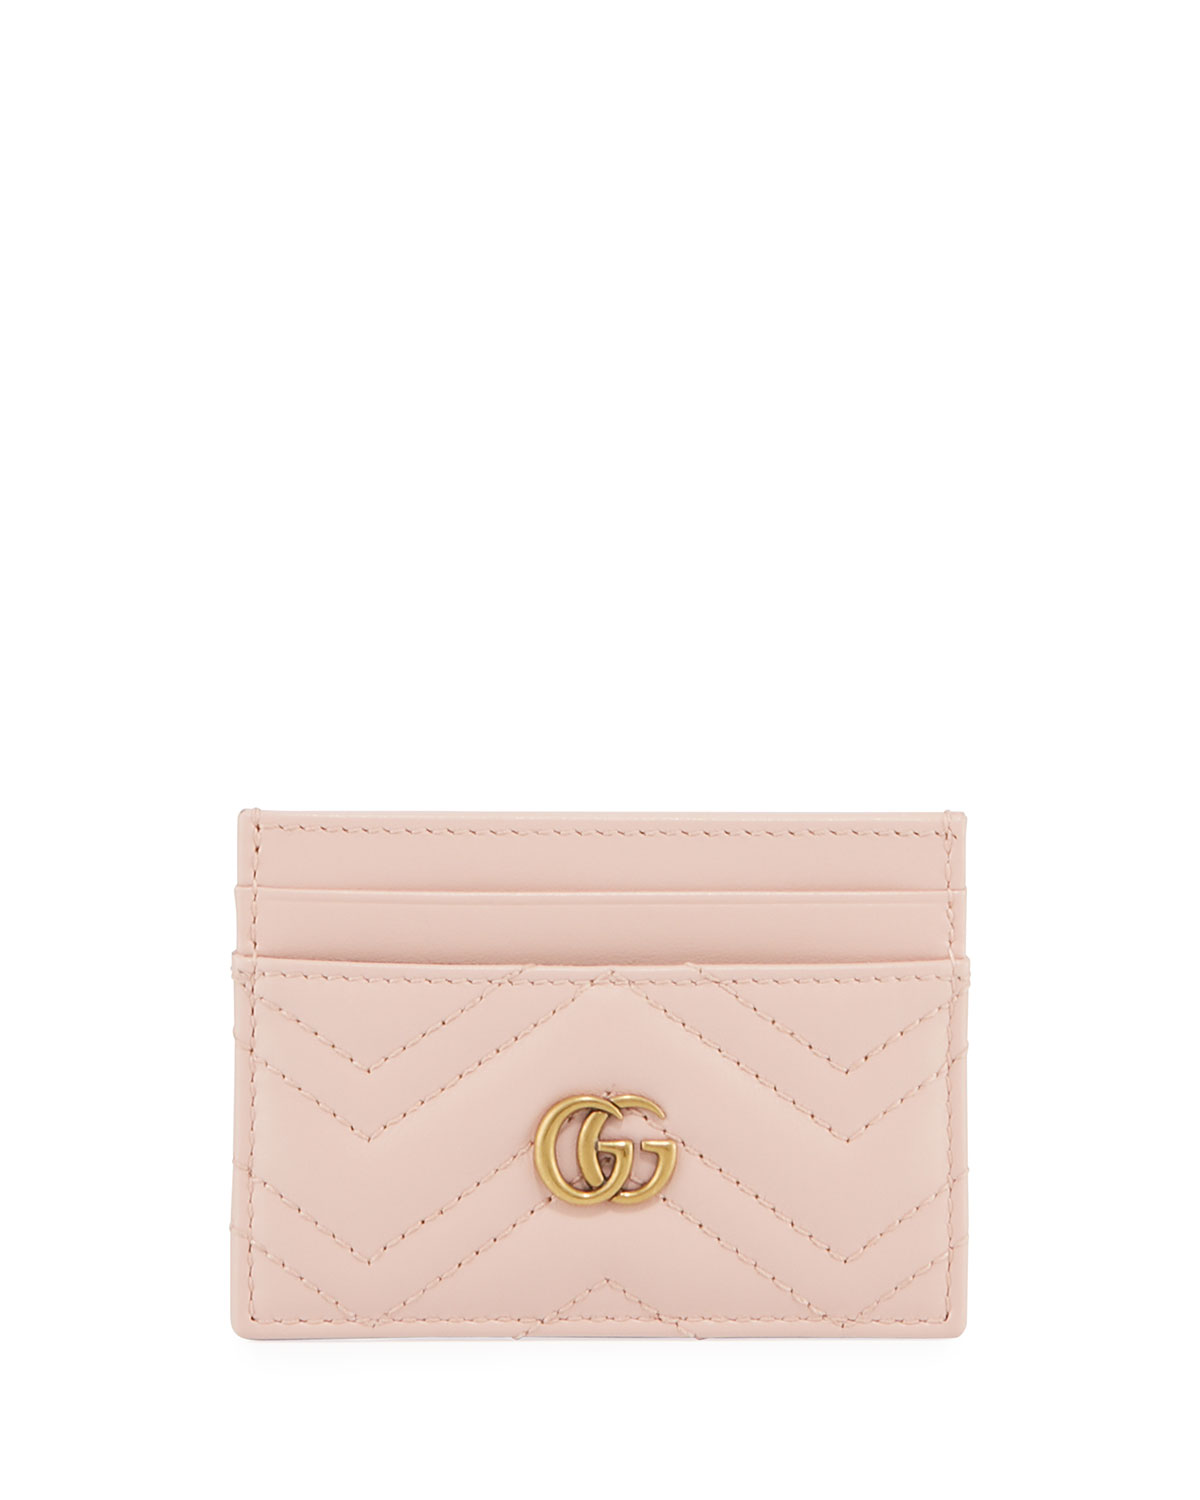 Gucci Bags GG MARMONT MATELASSE CARD CASE